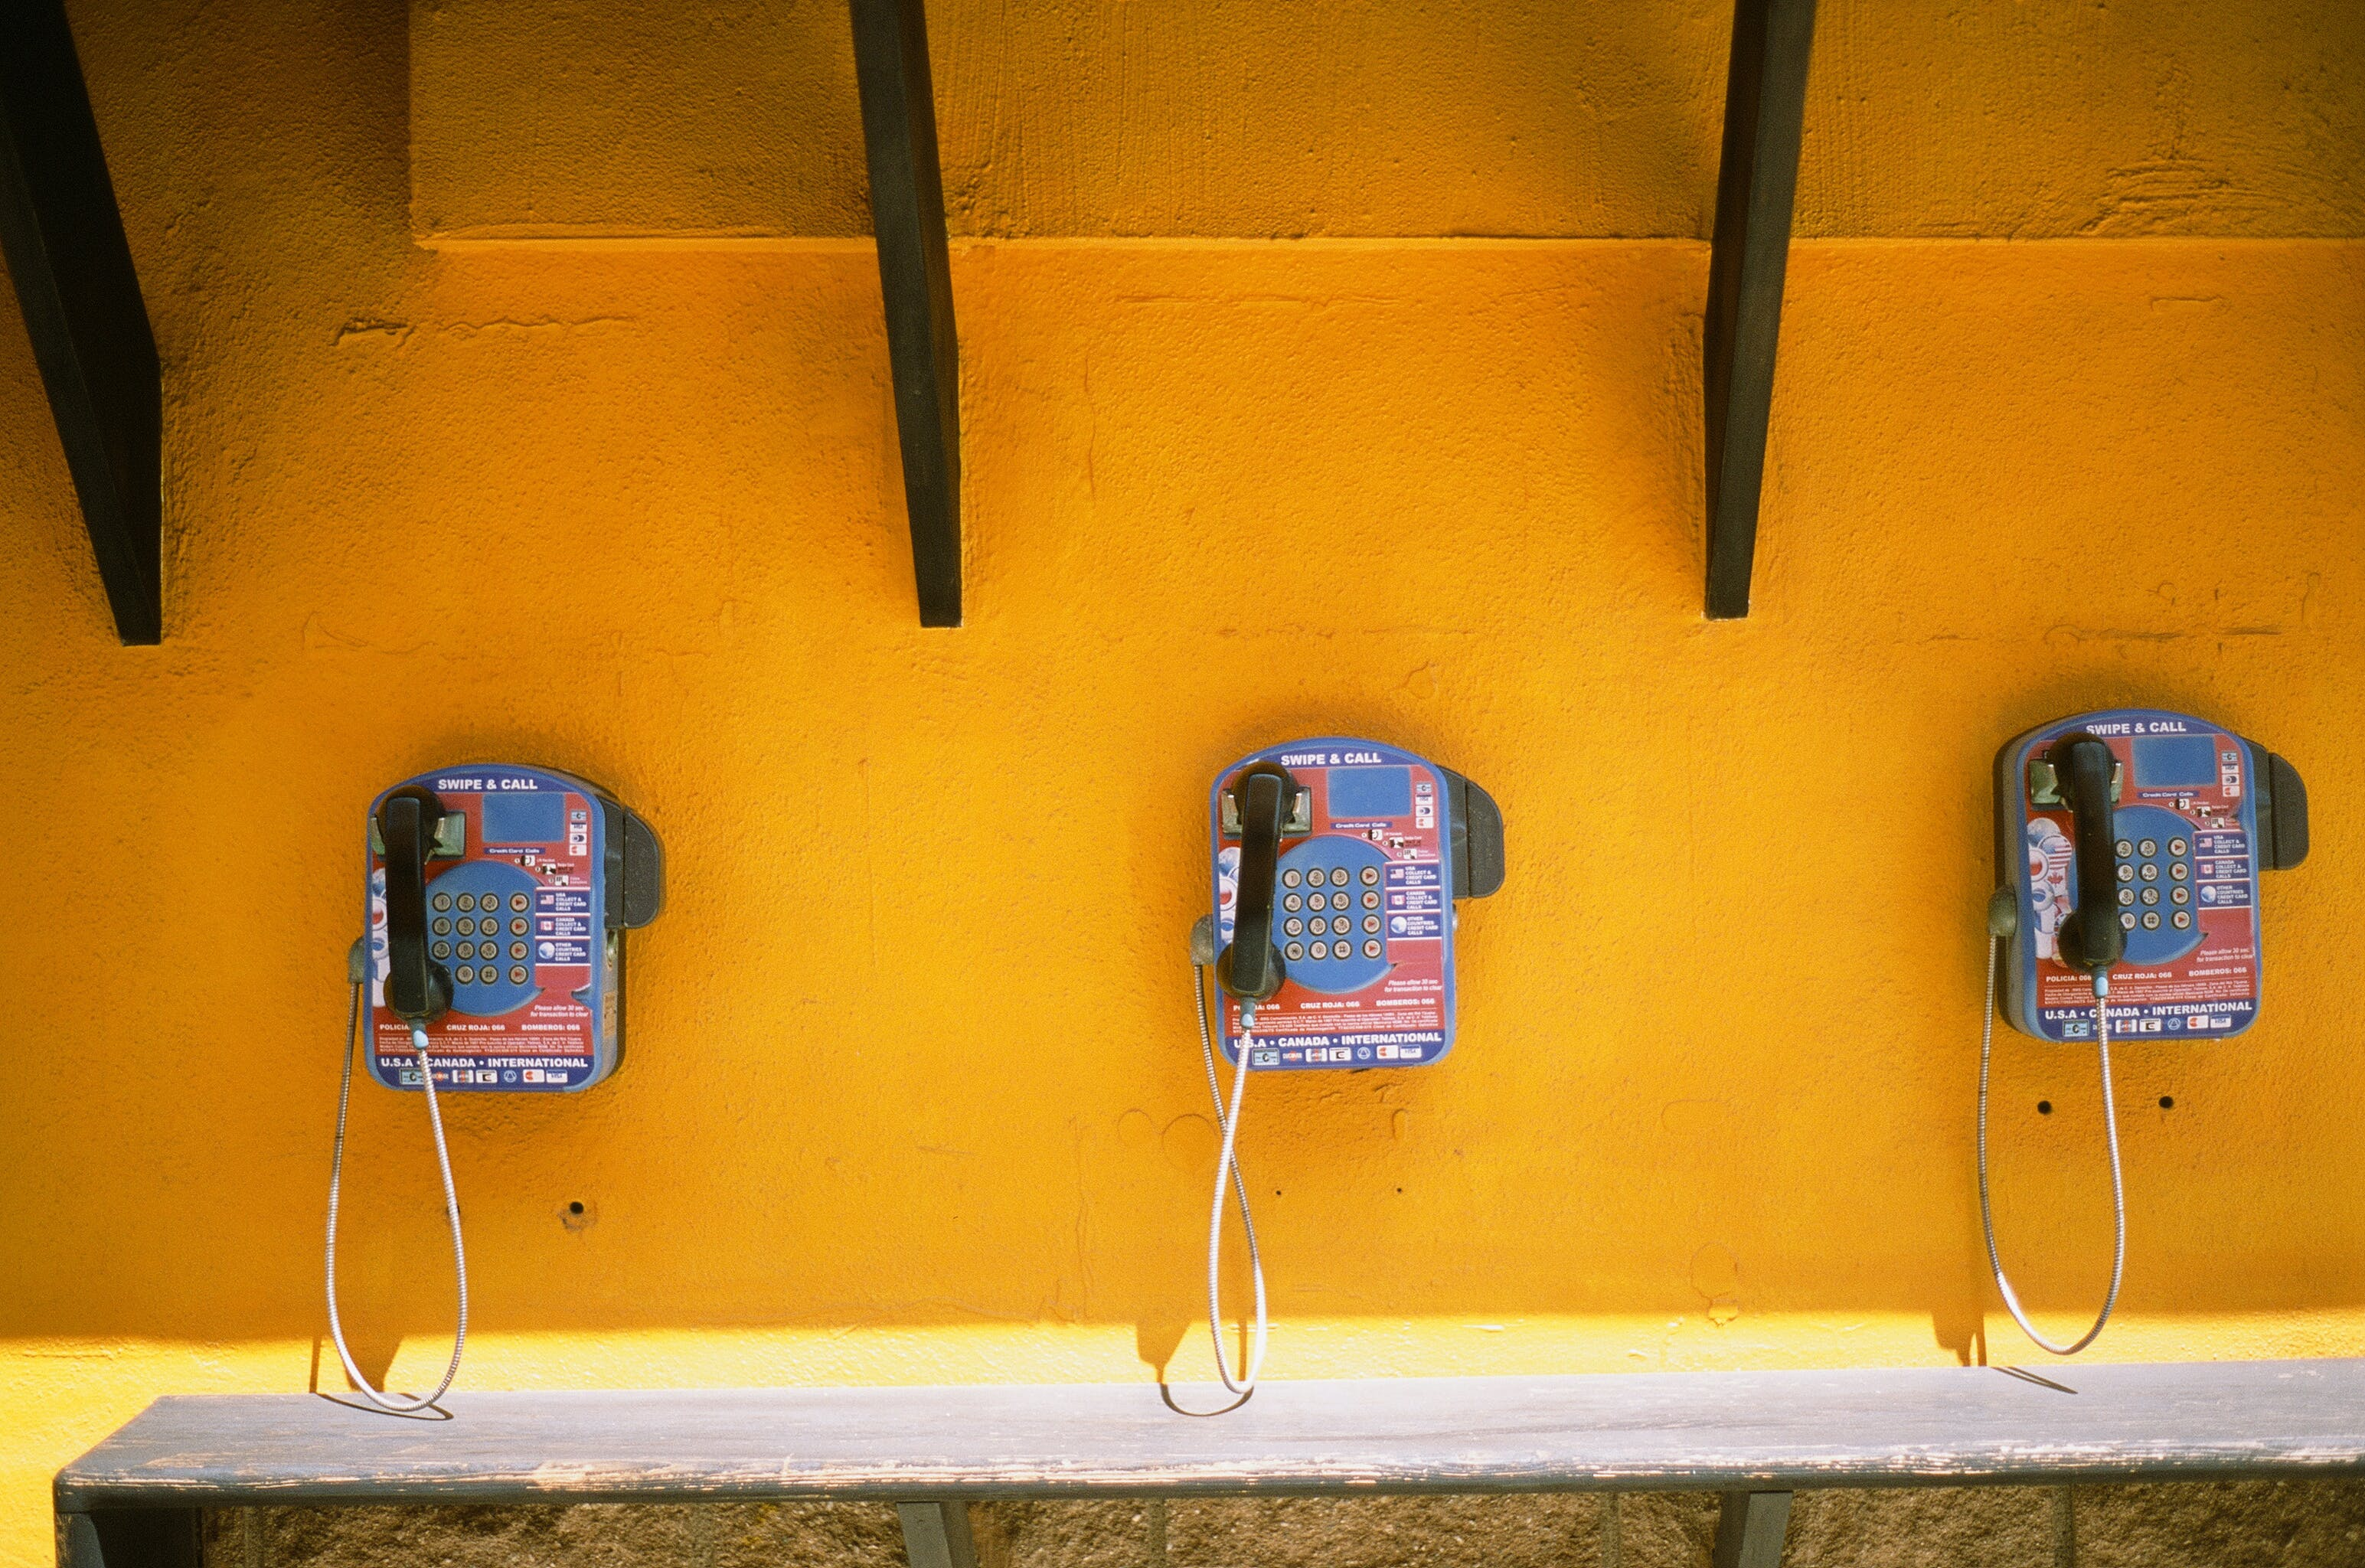 Three Blue-and-black Telephones